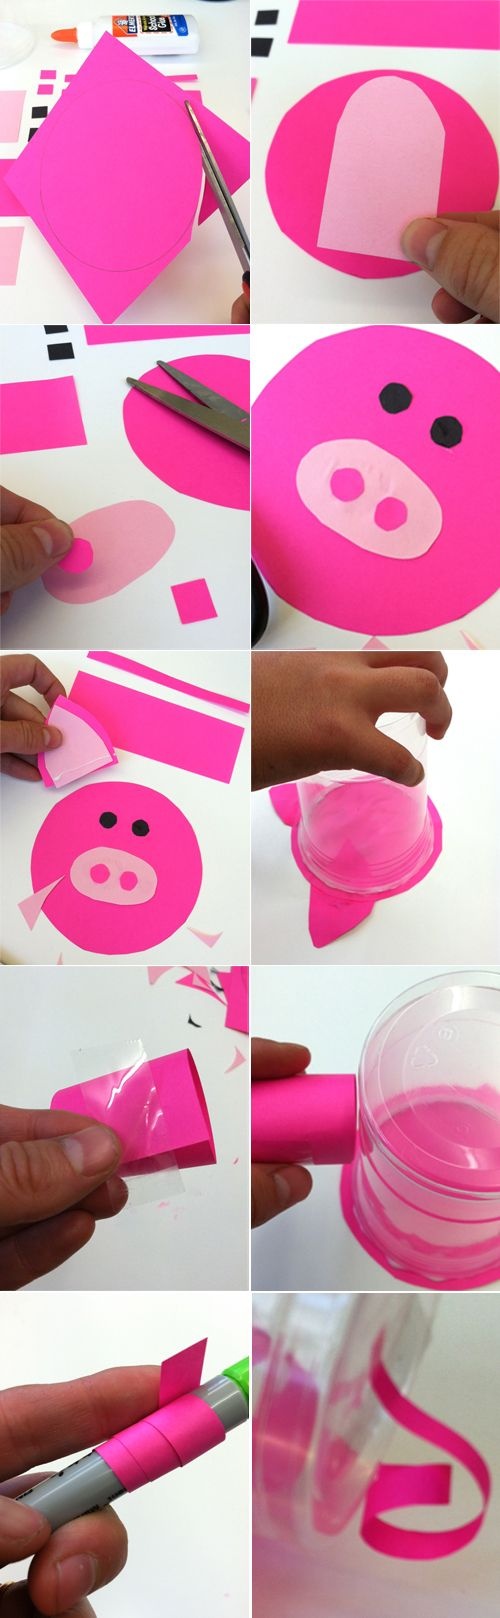 diy piggy bank for kids